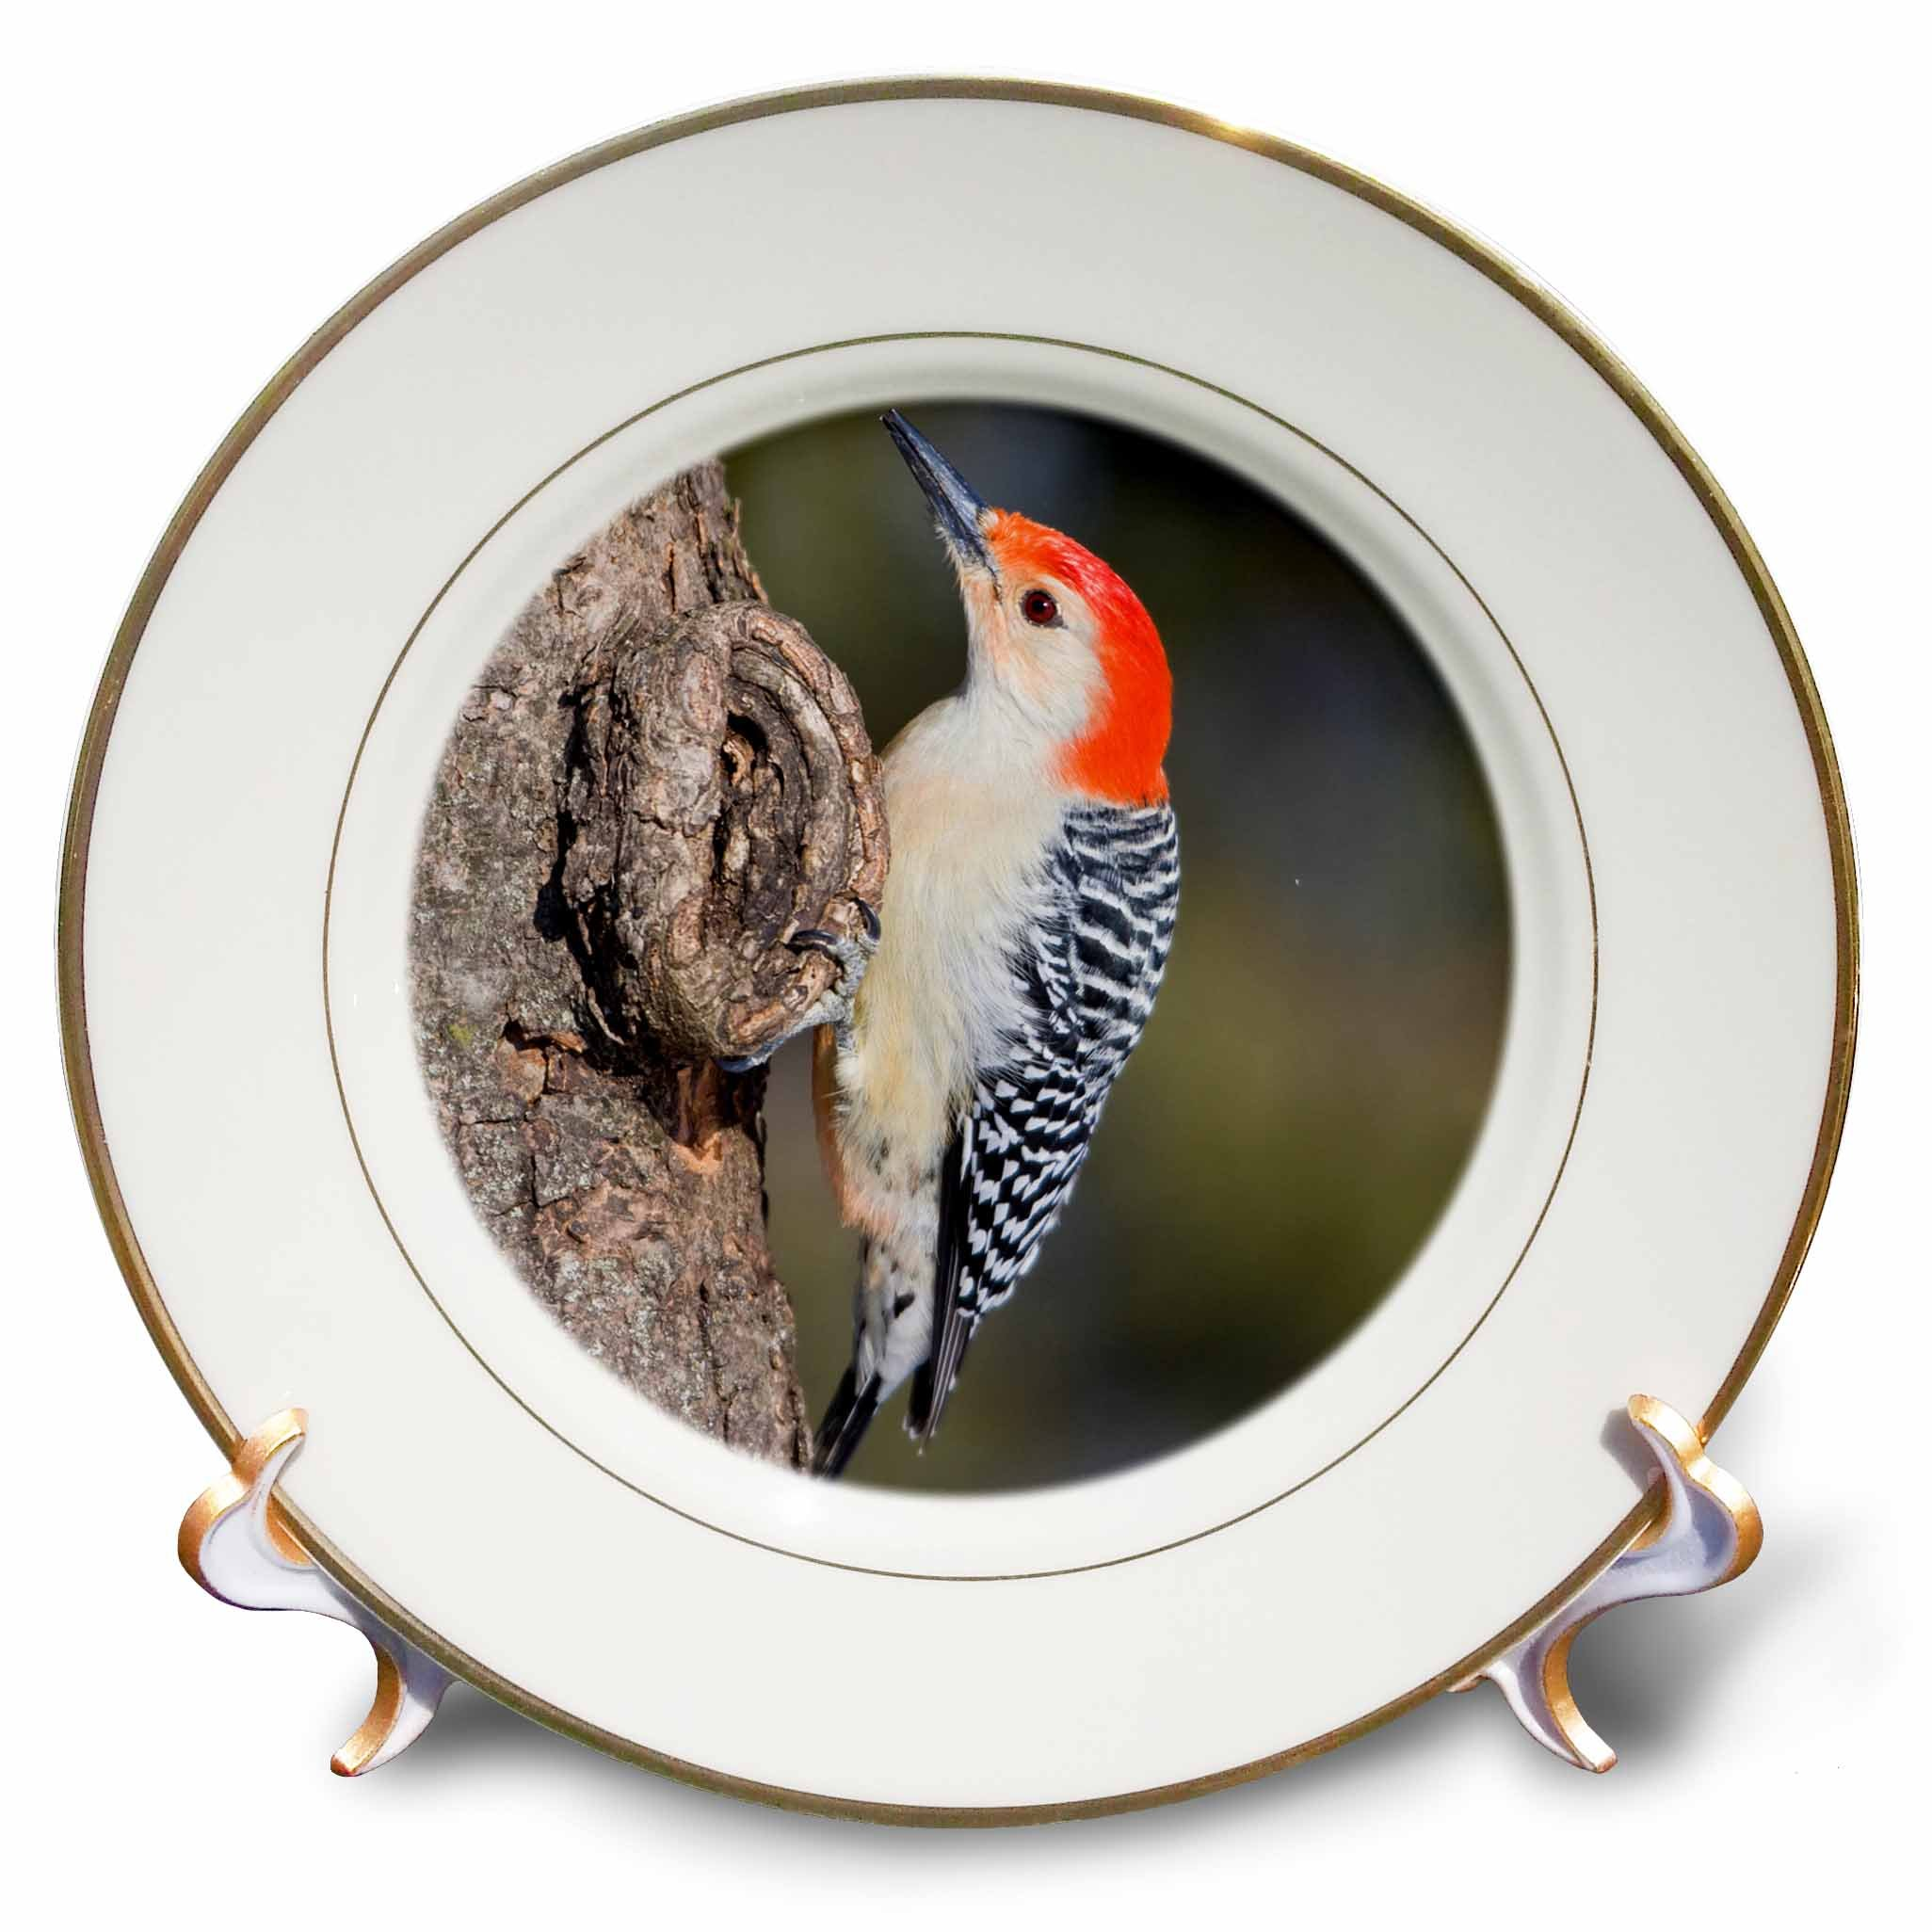 3dRose cp_206263_1 Marion Co IL Red bellied Woodpecker feeding nestling at Nest Cavity Porcelain Plate, 8''